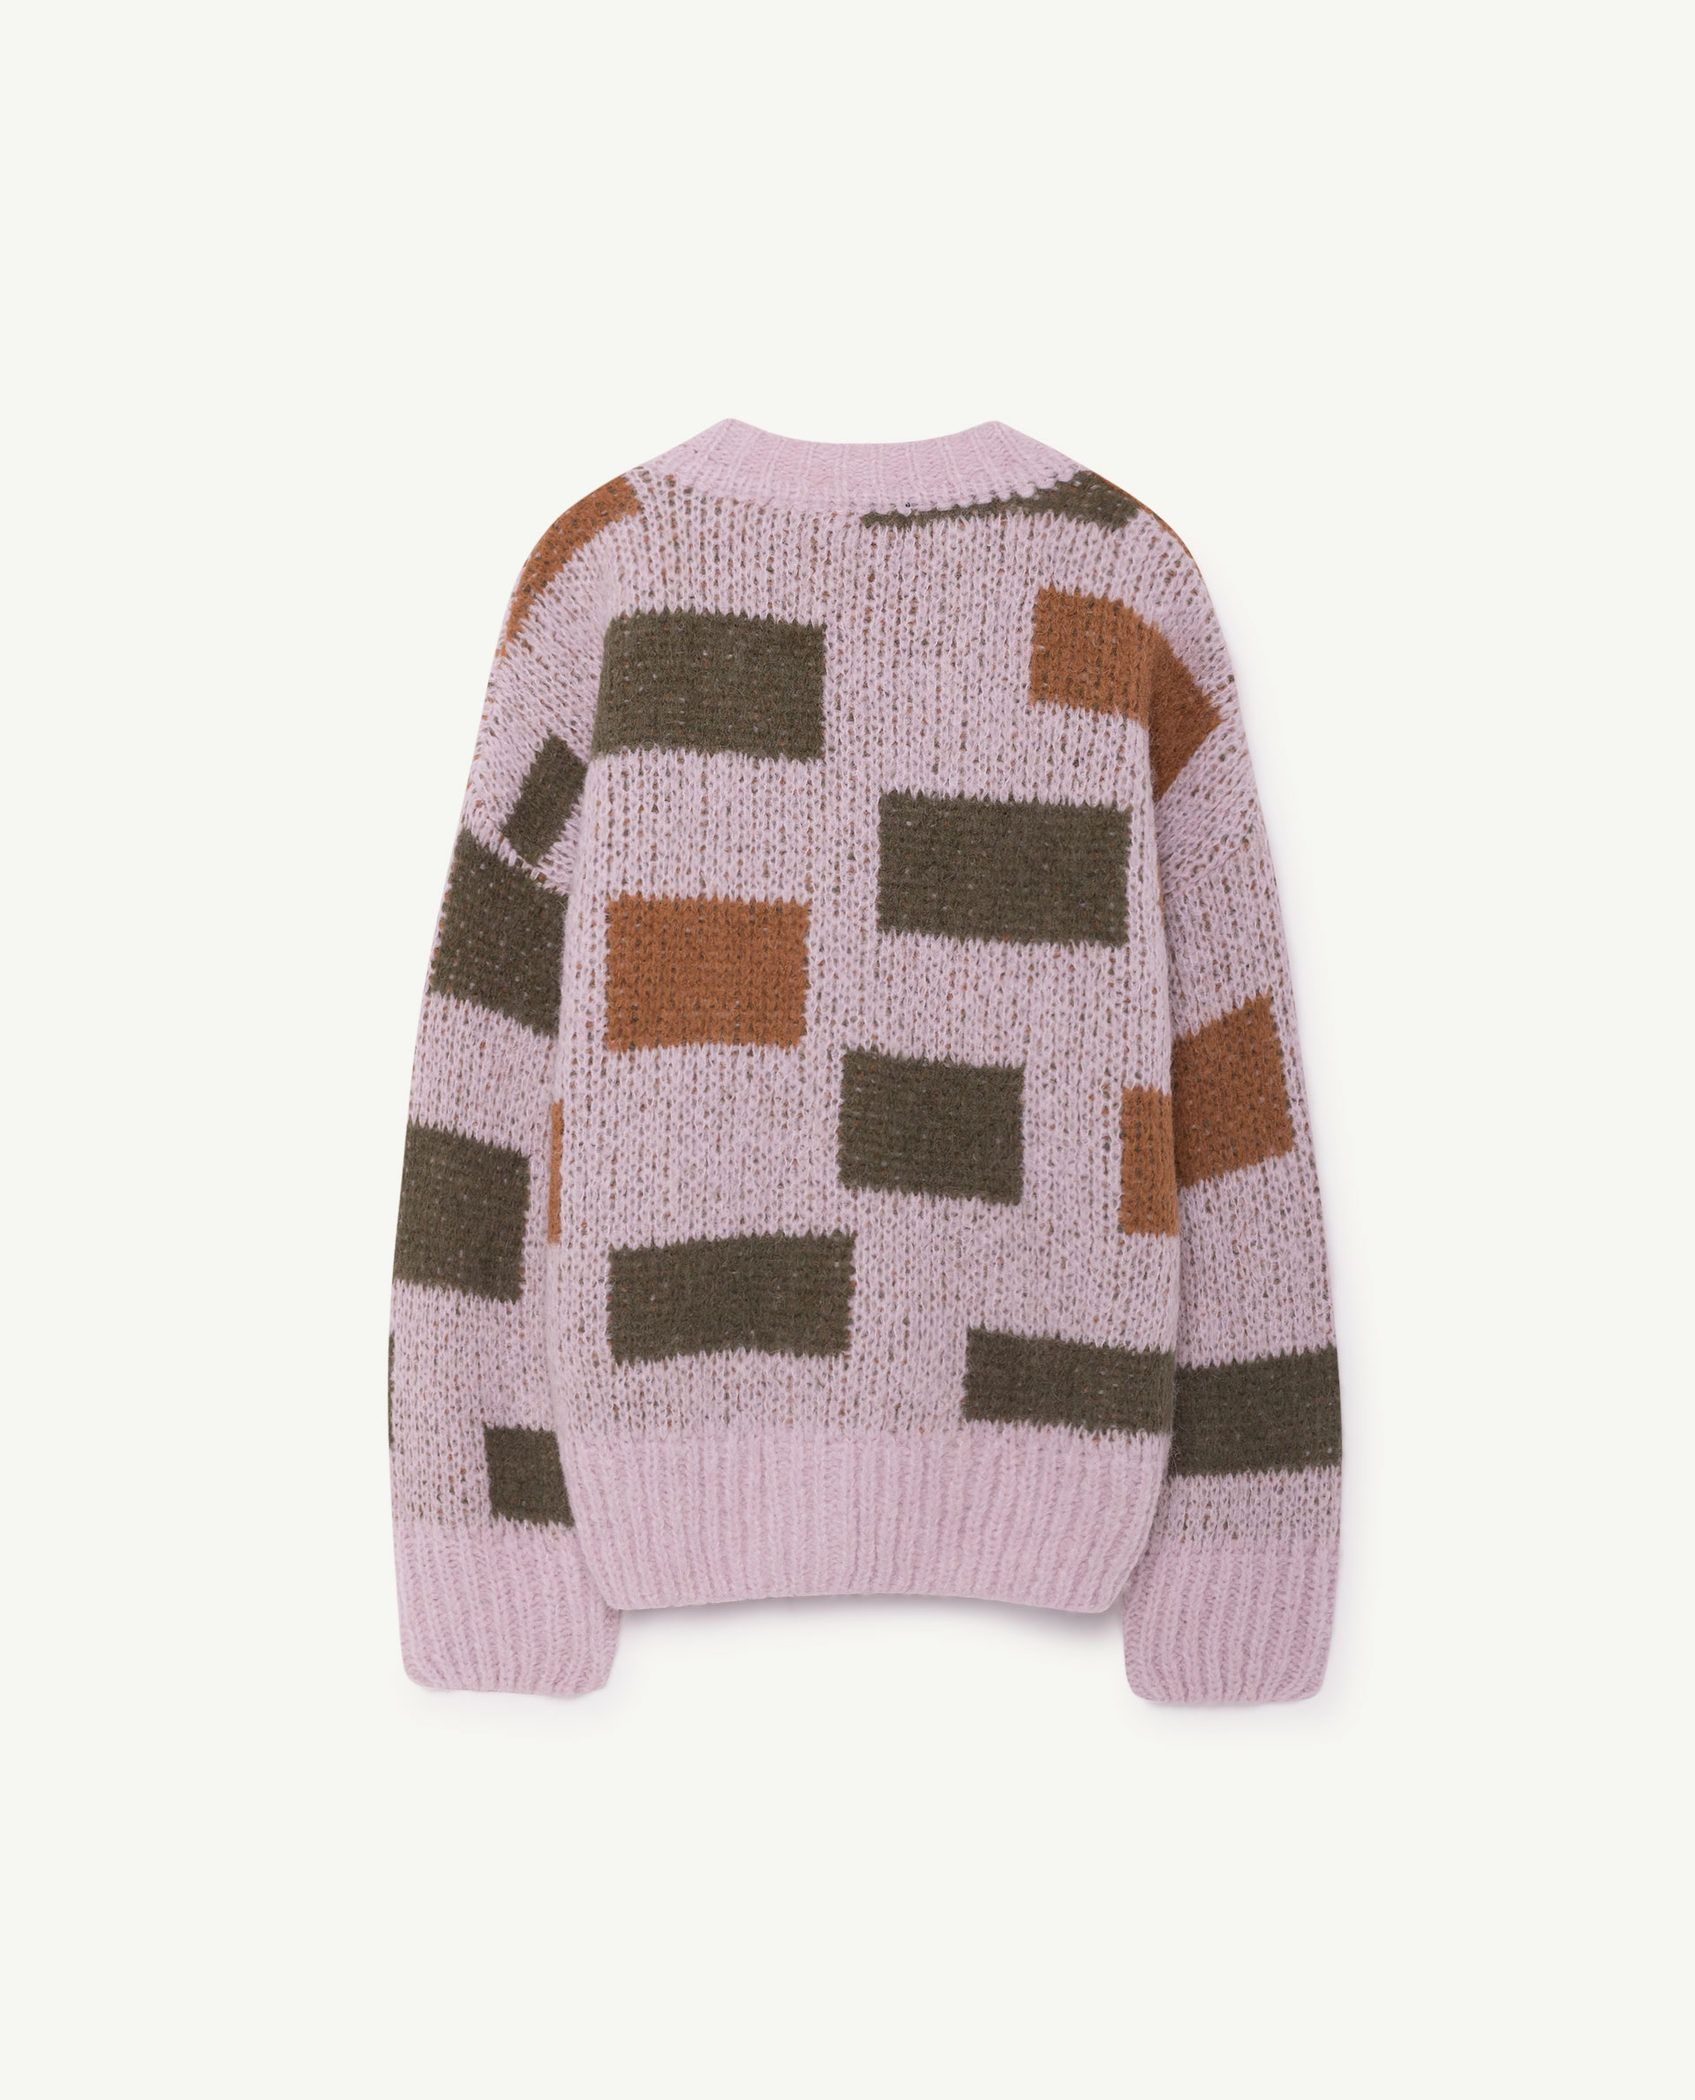 Picture Arty Peasant Cardigan img-2